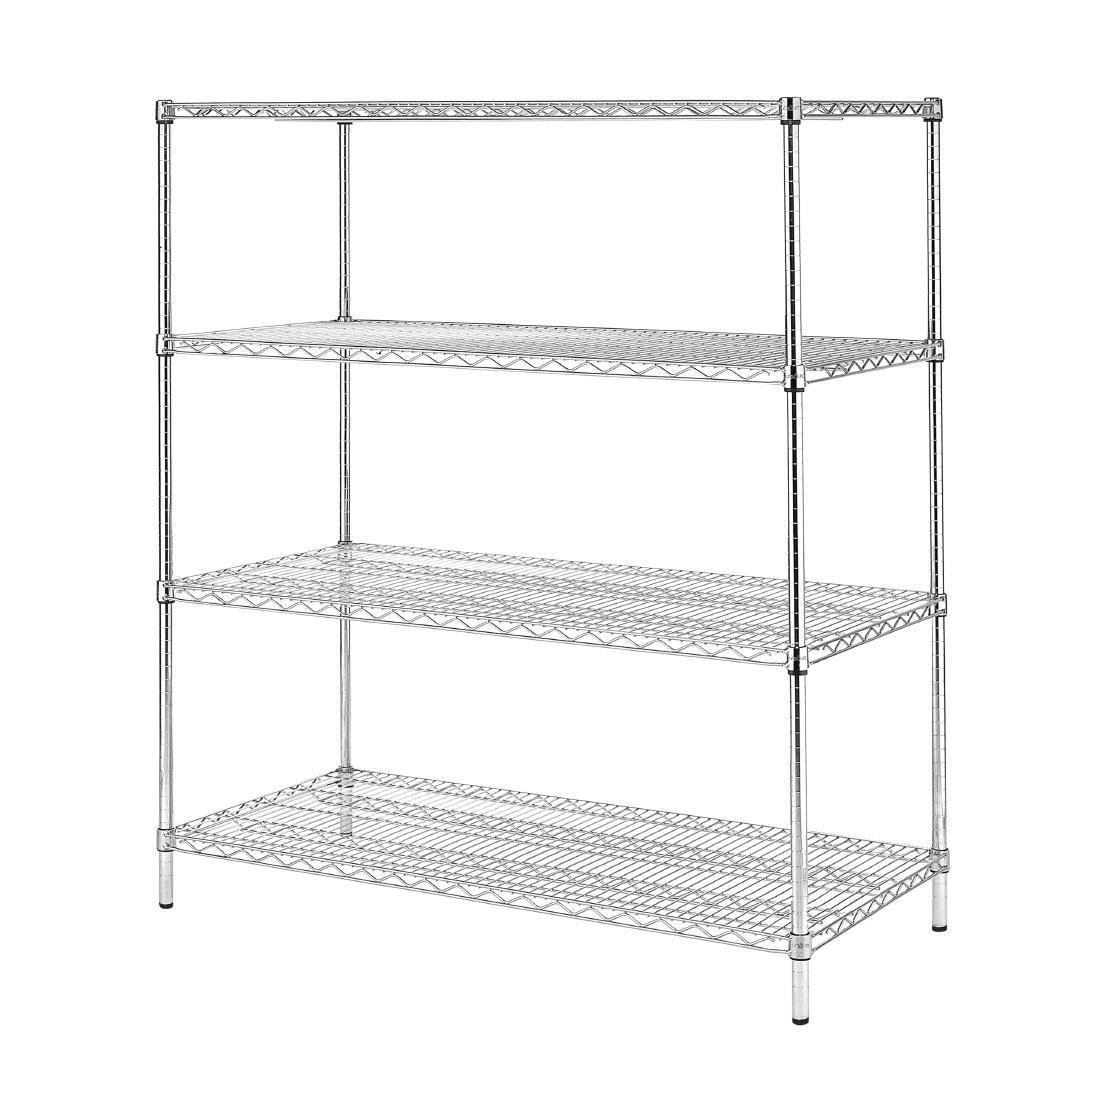 Vogue 4 Tier Wire Shelving Kit 1830x610mm - U259